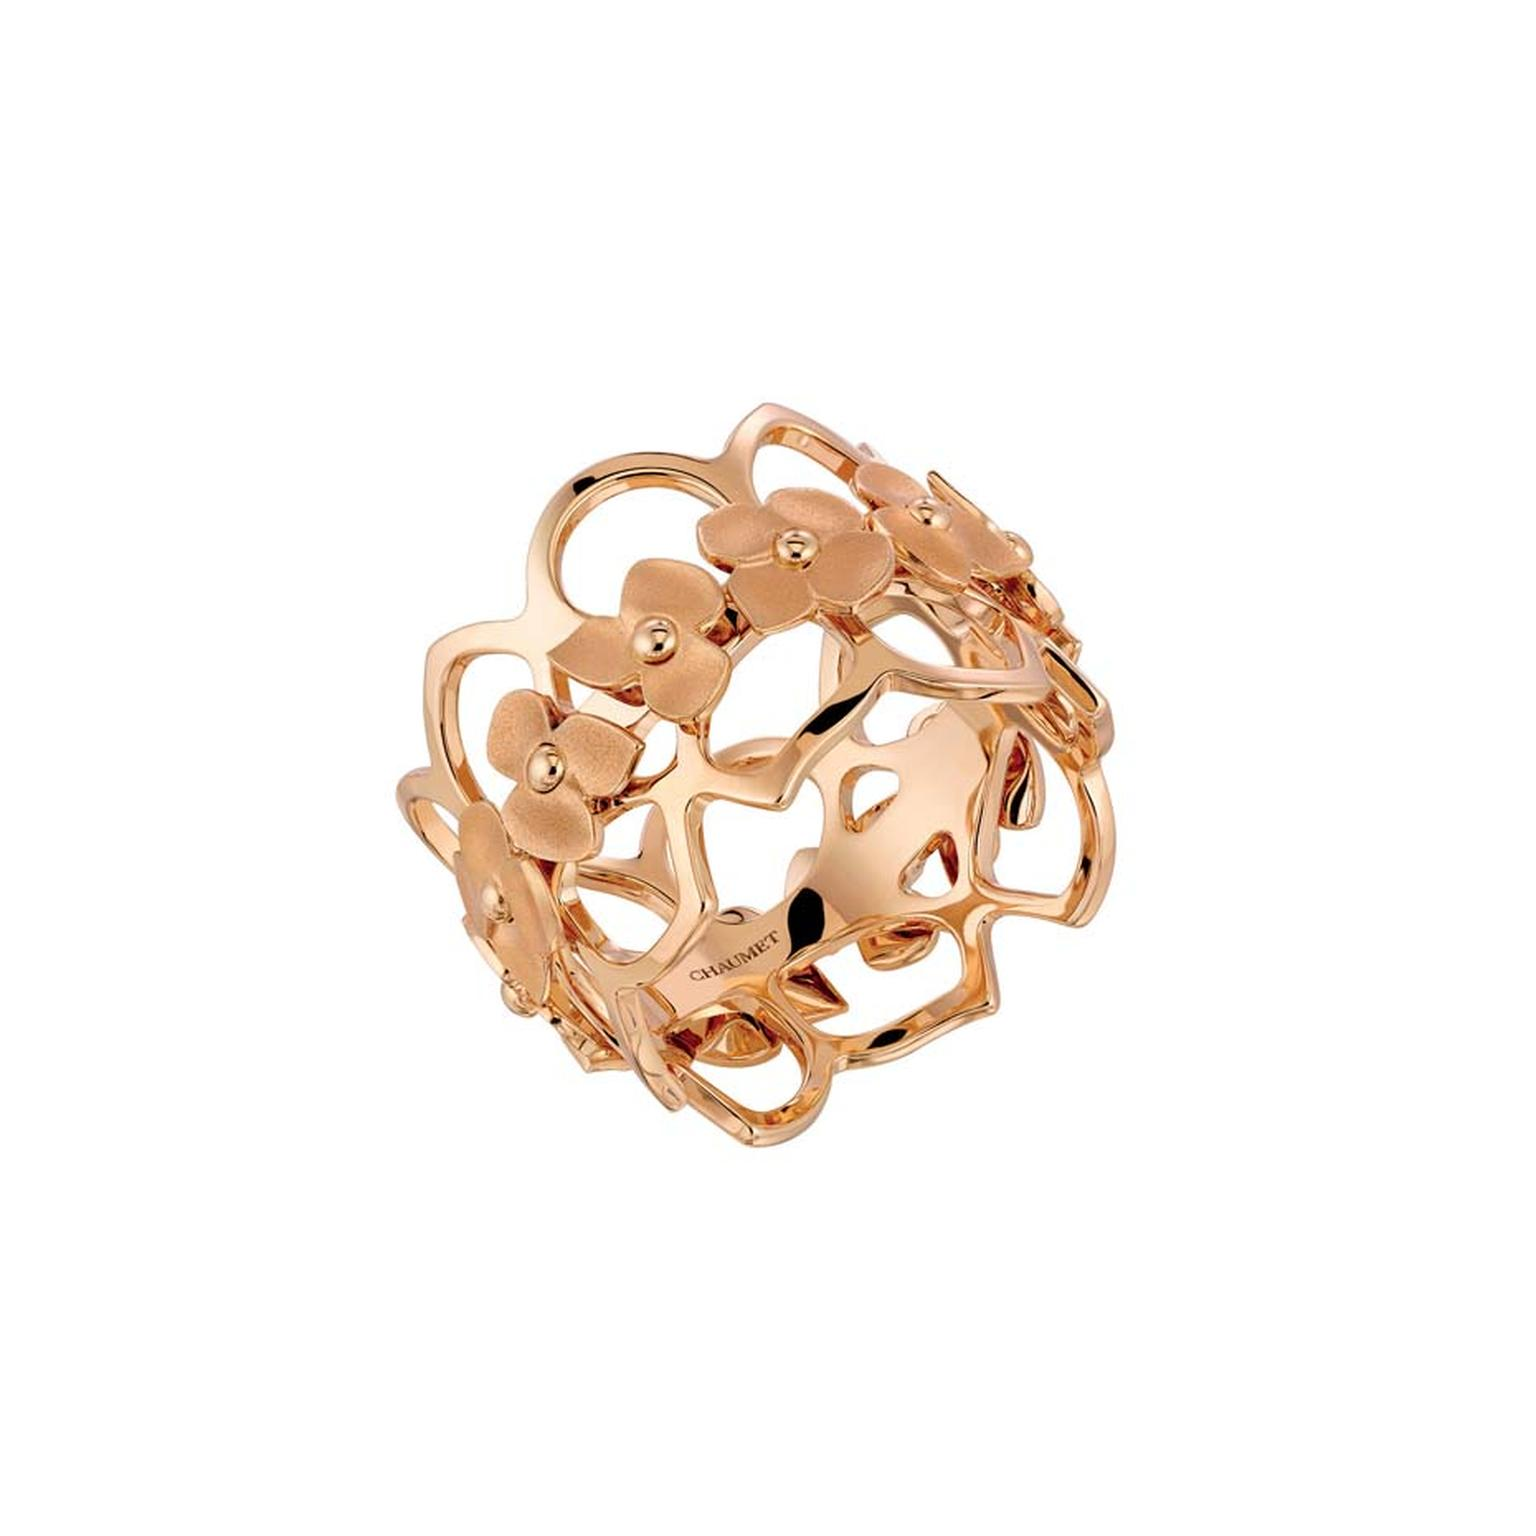 Chaumet Hortensia rose gold ring.